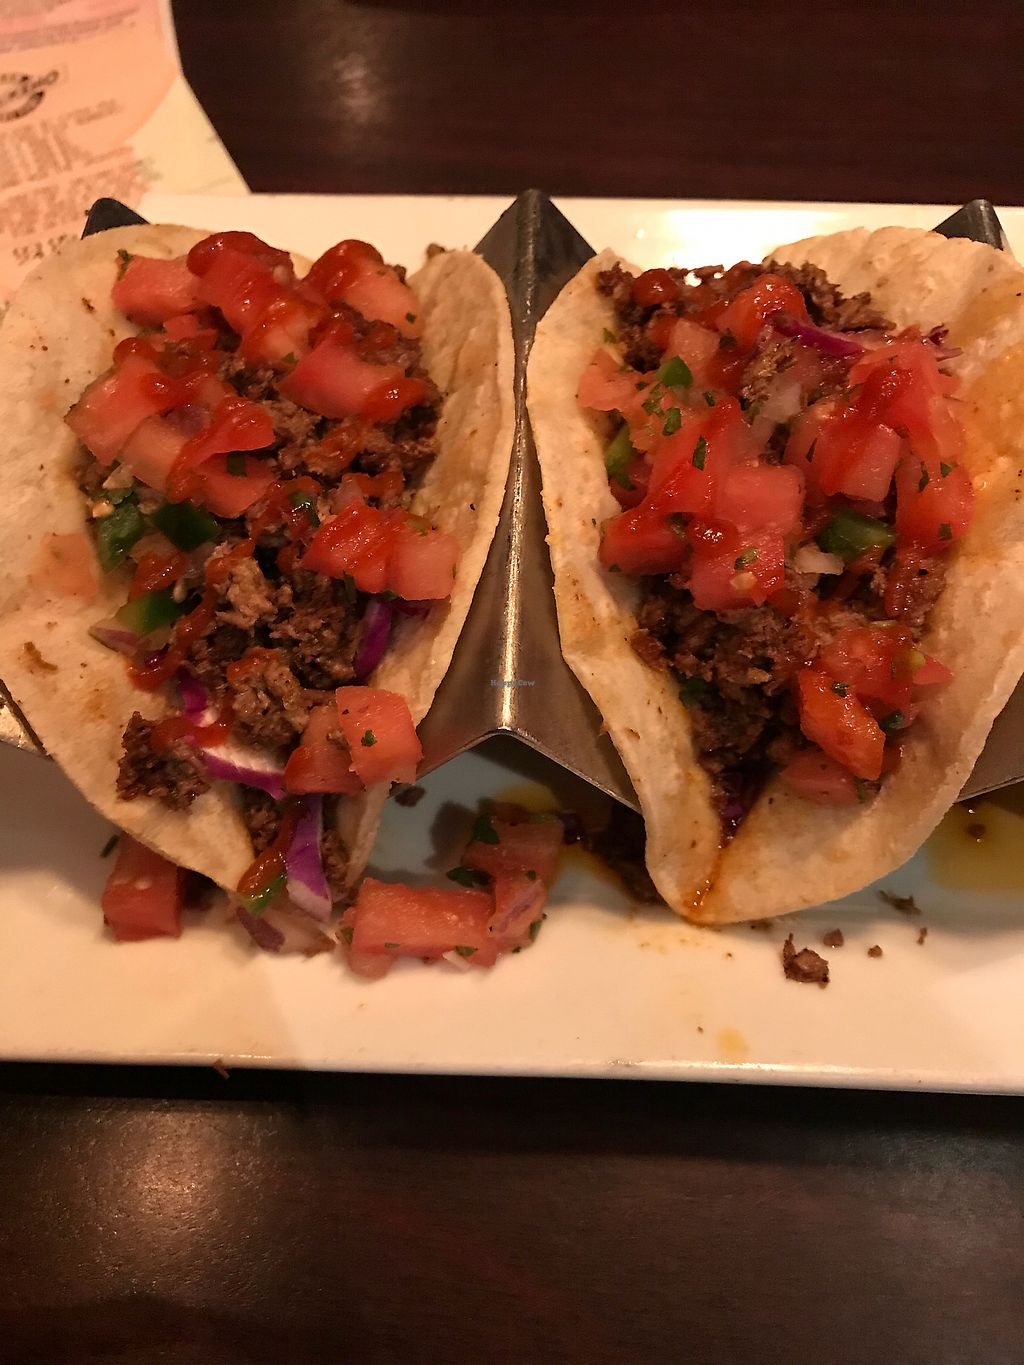 """Photo of Terry's Terrace  by <a href=""""/members/profile/b_randy"""">b_randy</a> <br/>Cajun Impossible Tacos <br/> January 23, 2018  - <a href='/contact/abuse/image/109658/349959'>Report</a>"""